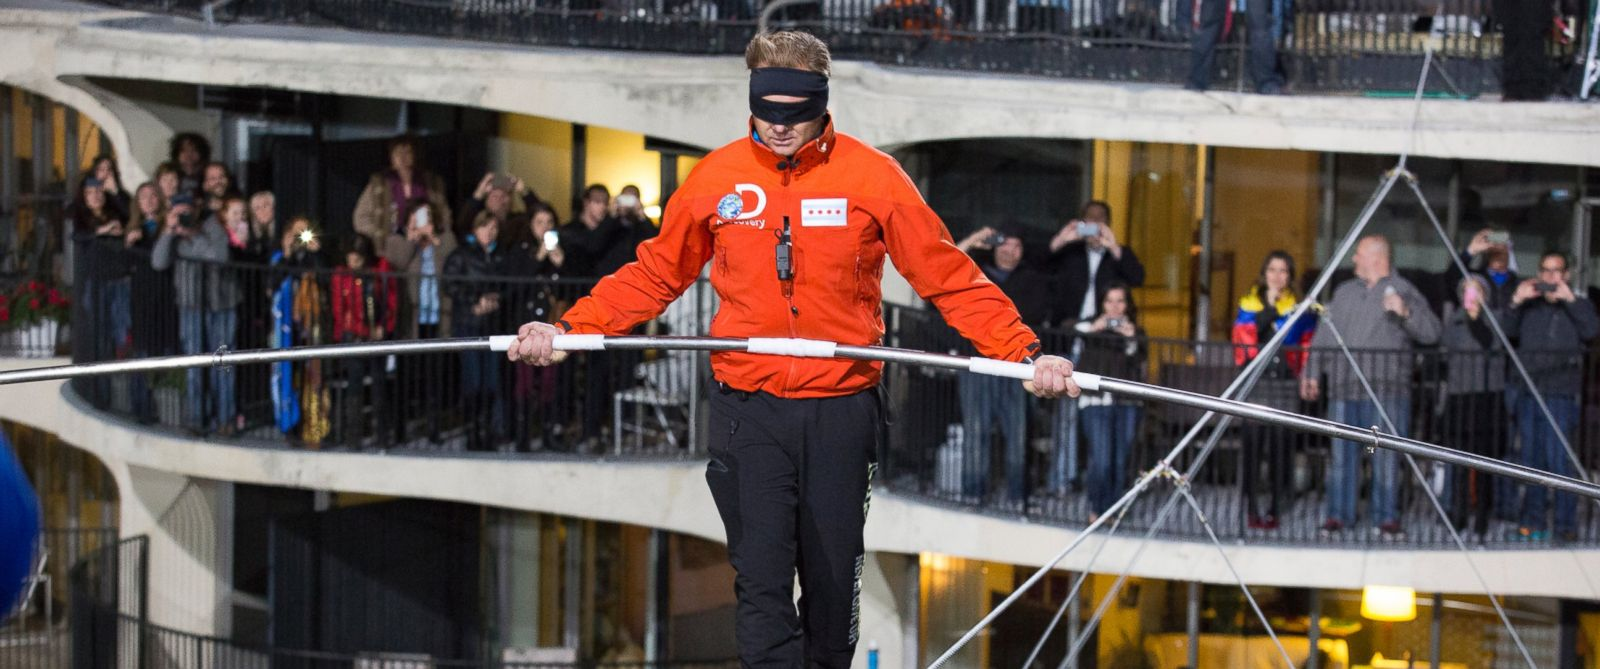 PHOTO: Nik Wallenda walks across the Chicago skyline blindfolded for Discovery Channels Skyscraper Live with Nik Wallenda, Nov. 2, 2014.